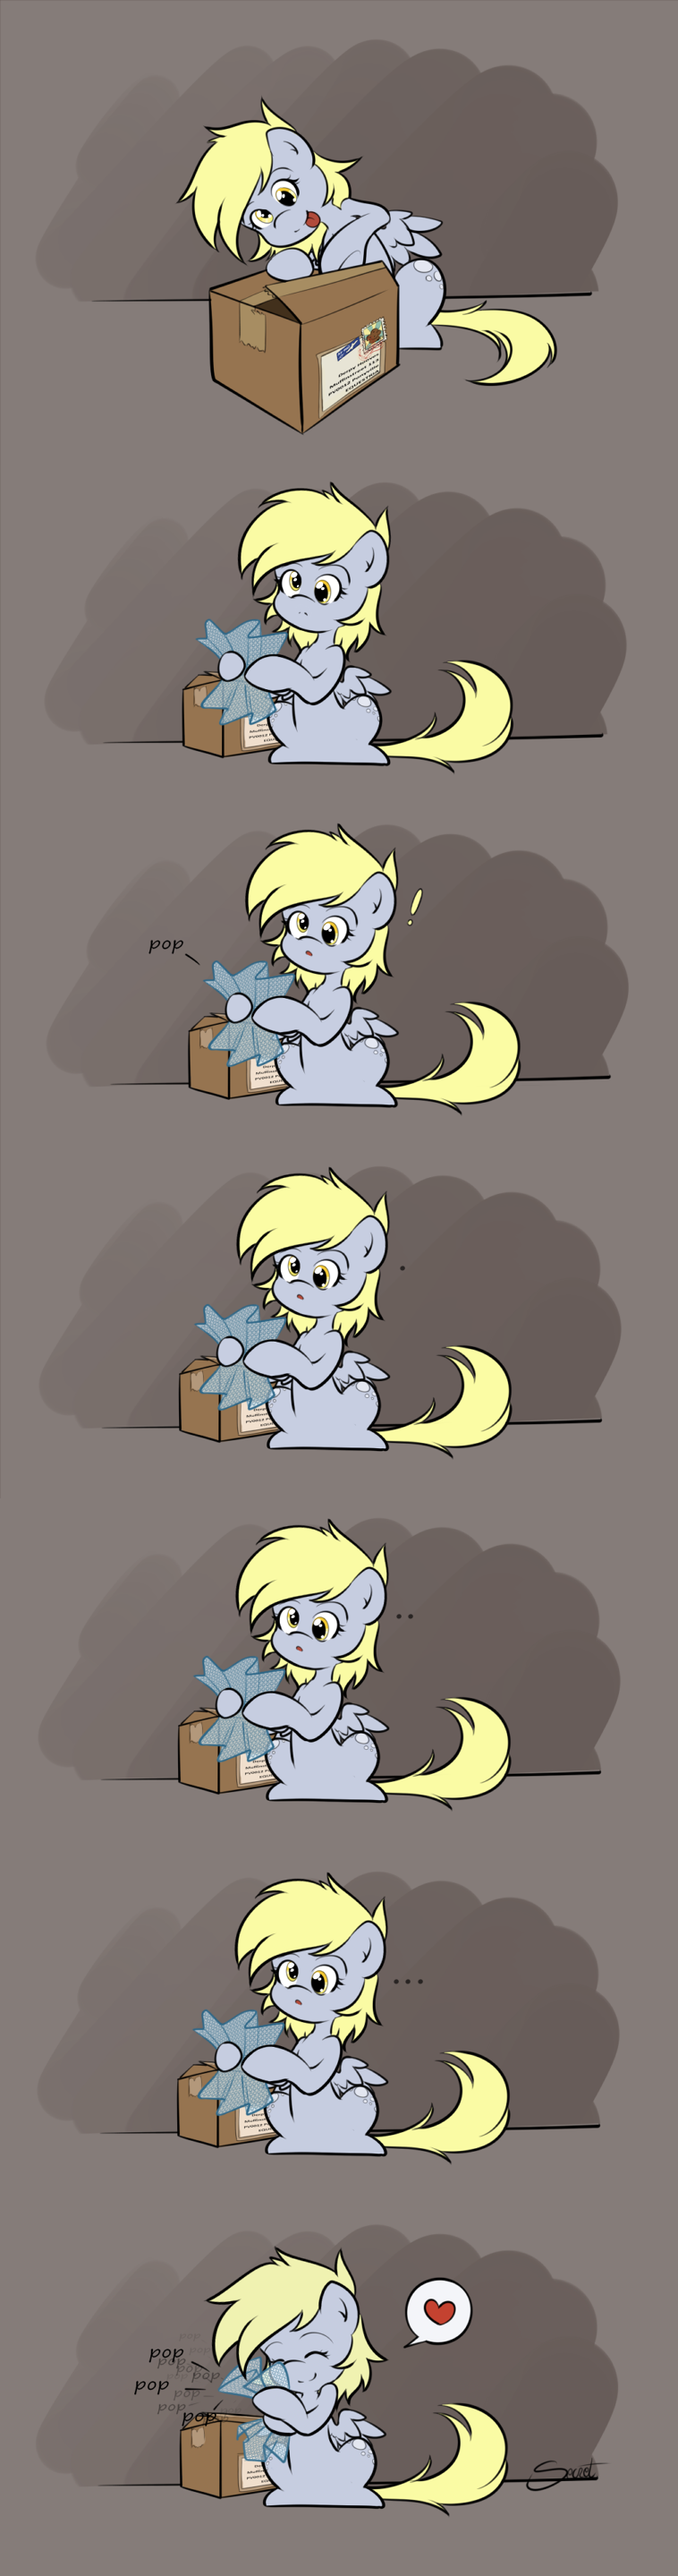 Bubblewrap by secret-pony